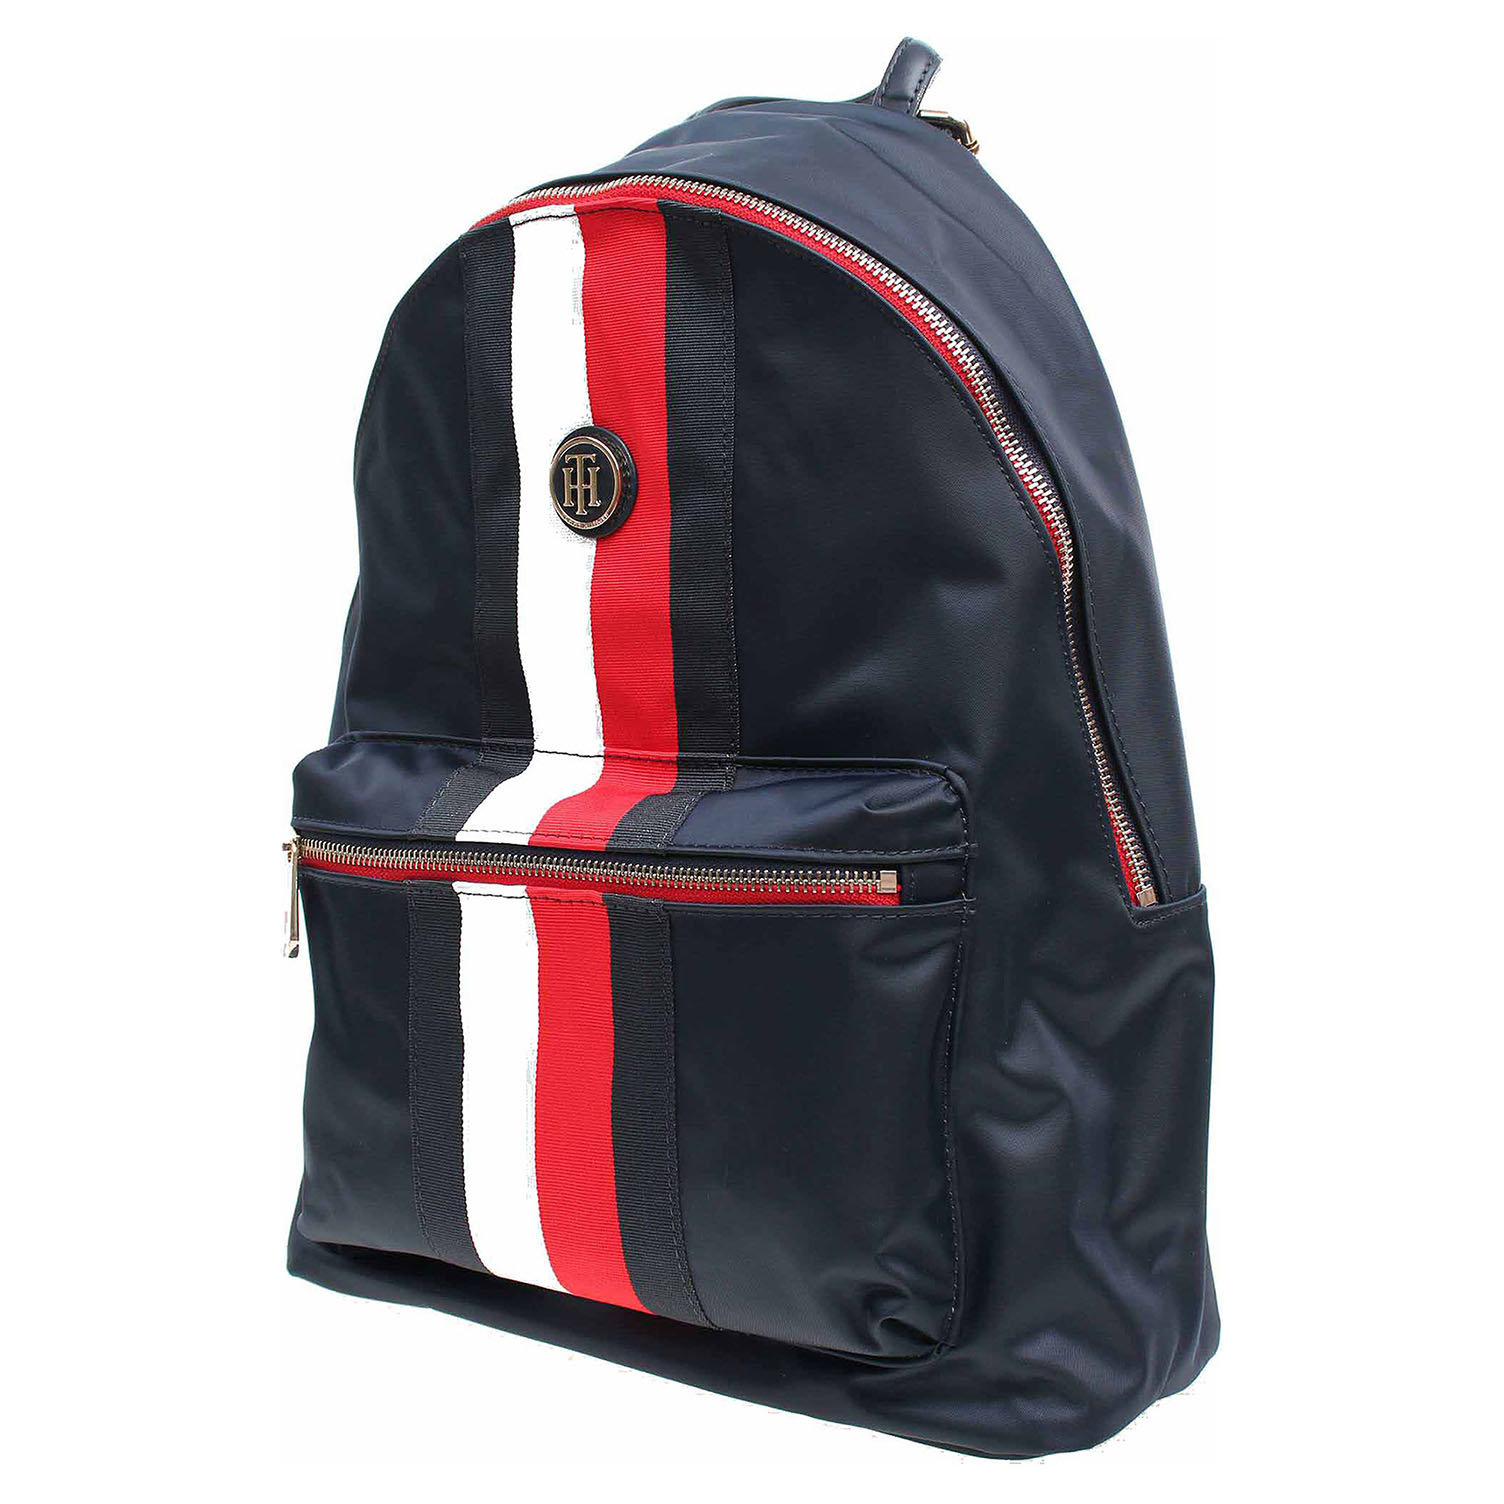 Ecco Tommy Hilfiger dámský batoh AW0AW06861 901 corporate 11601340 5589bc59ab